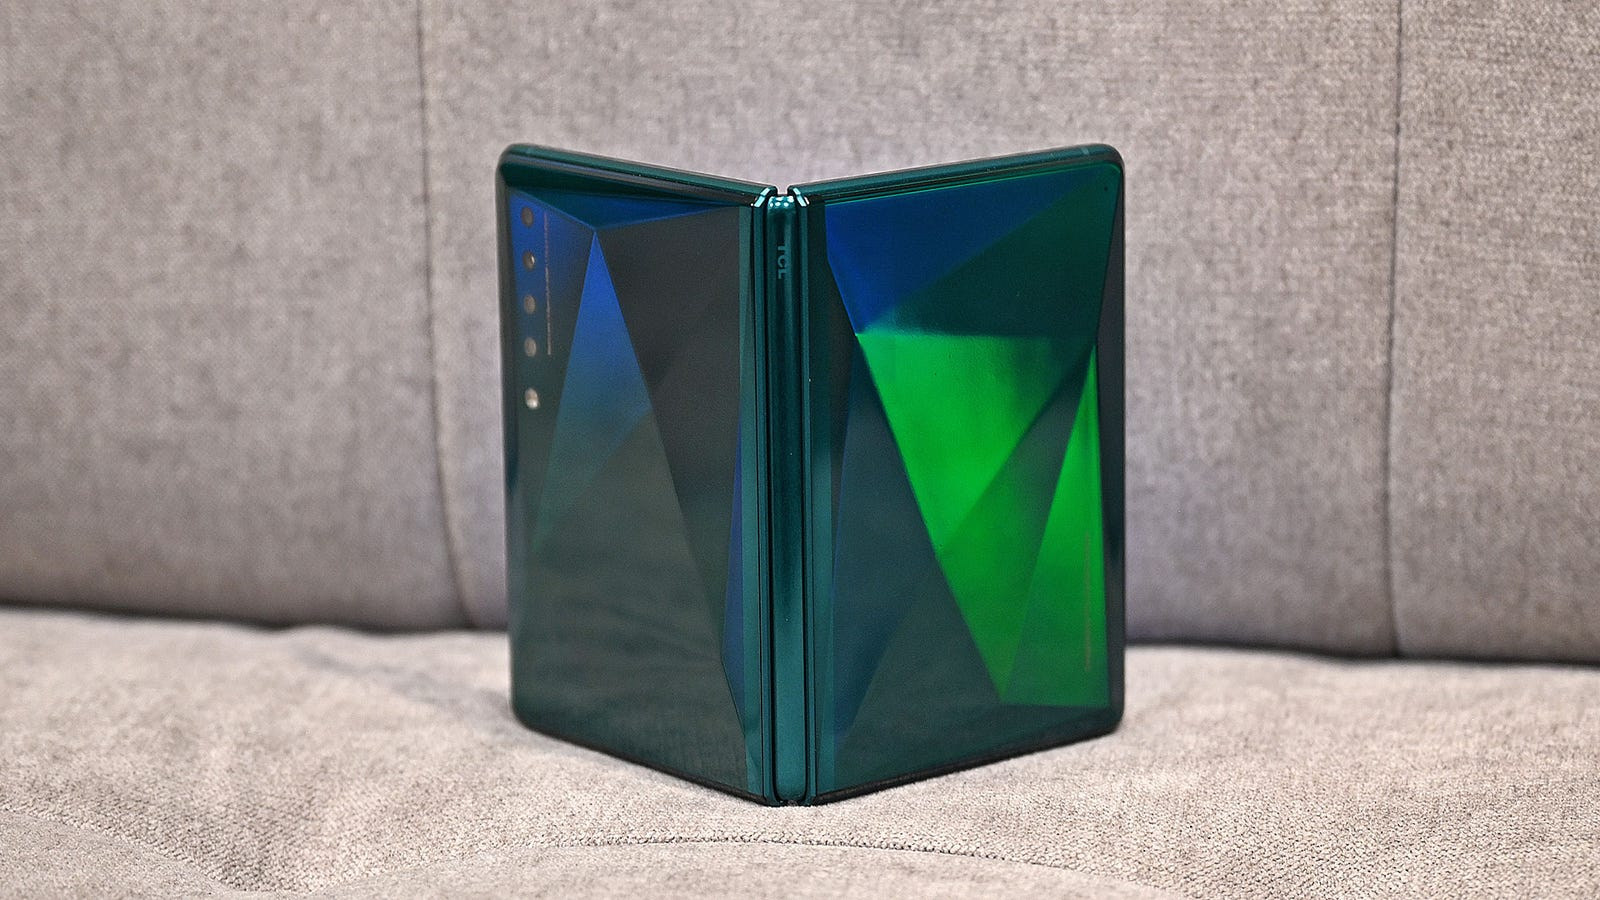 TCL's foldable concept doesn't have an official name yet, but it does look promising.